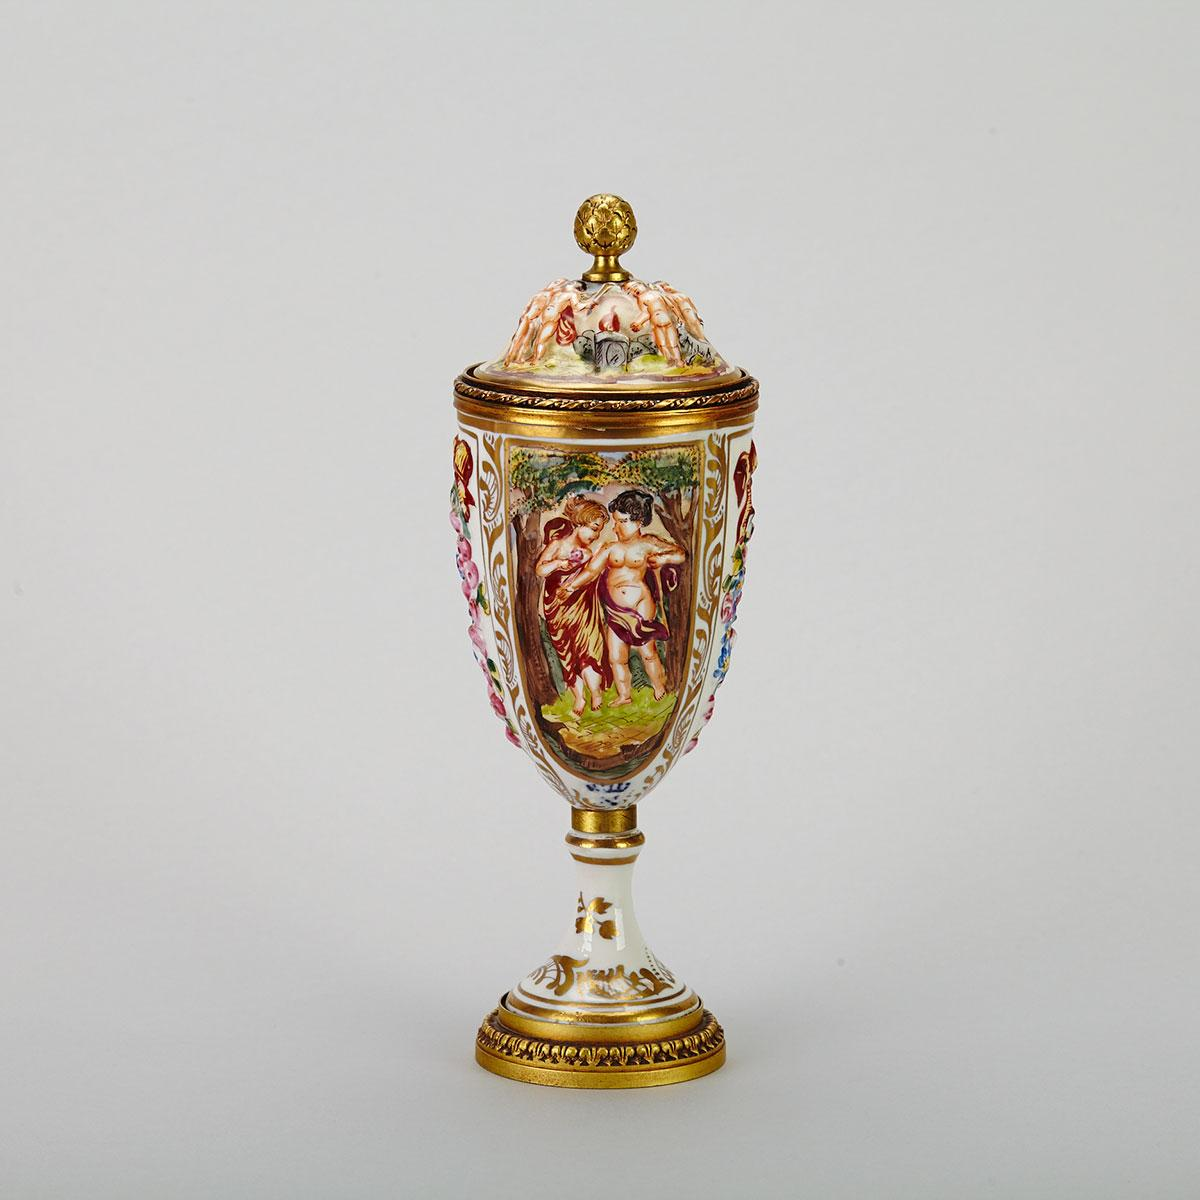 French Gilt Bronze Mounted 'Naples' Covered Urn, early 20th century